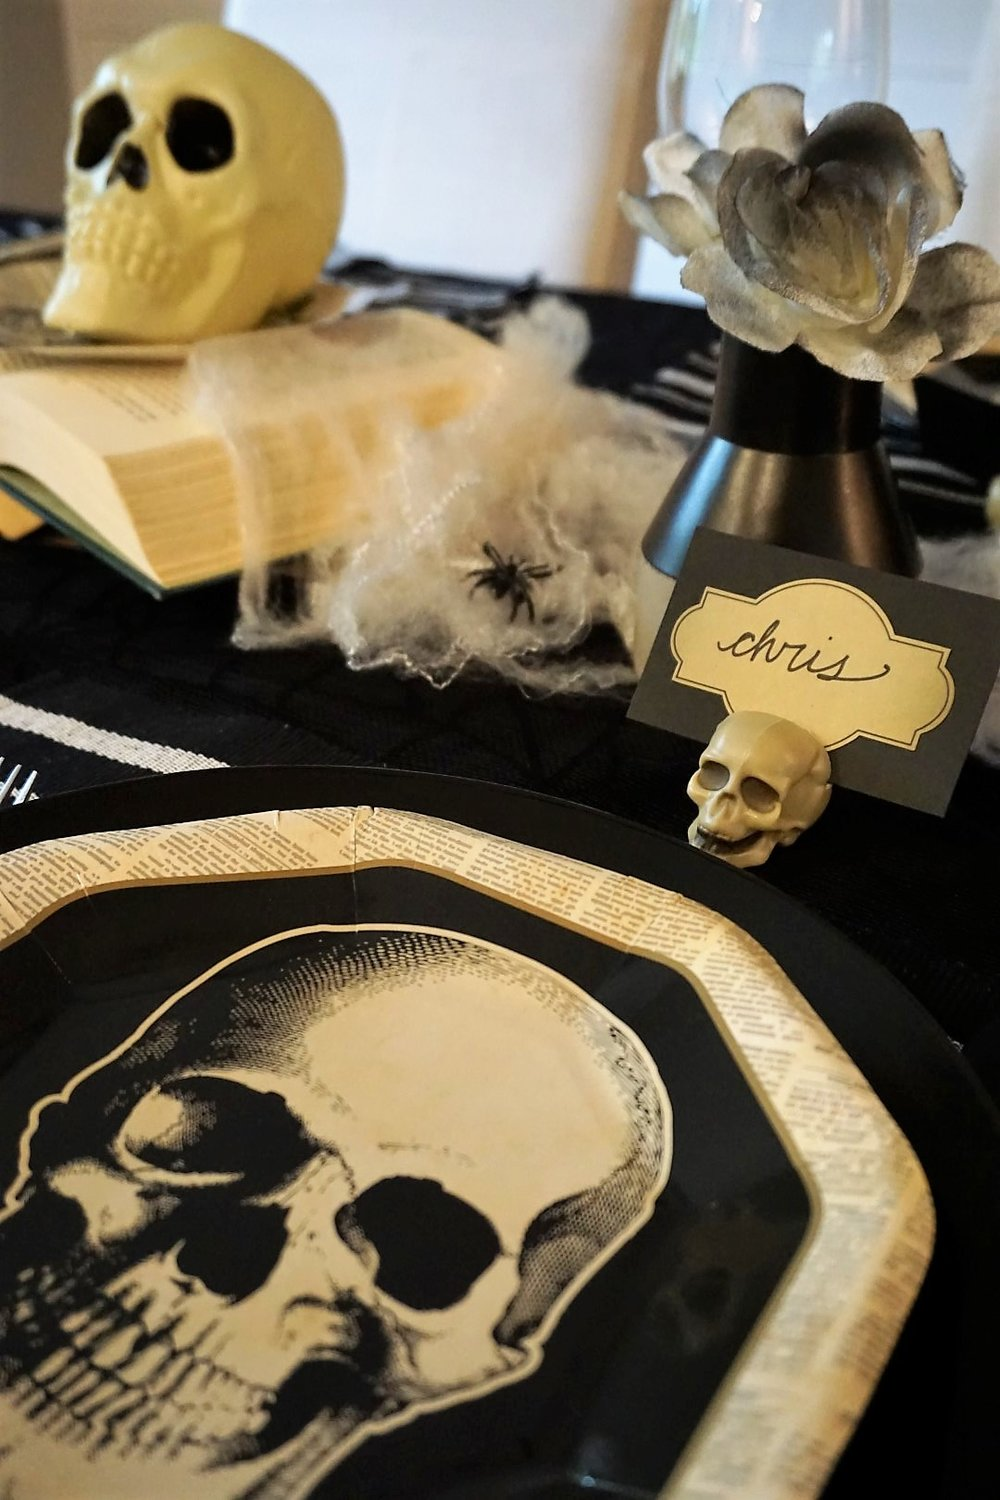 This year I was loving the vintage skull vibes! Click here to learn how to recreate this Halloween tablescape on a budget! | Legally Crafty #halloweendiy #halloweentable #halloweentablescape #halloweendiy